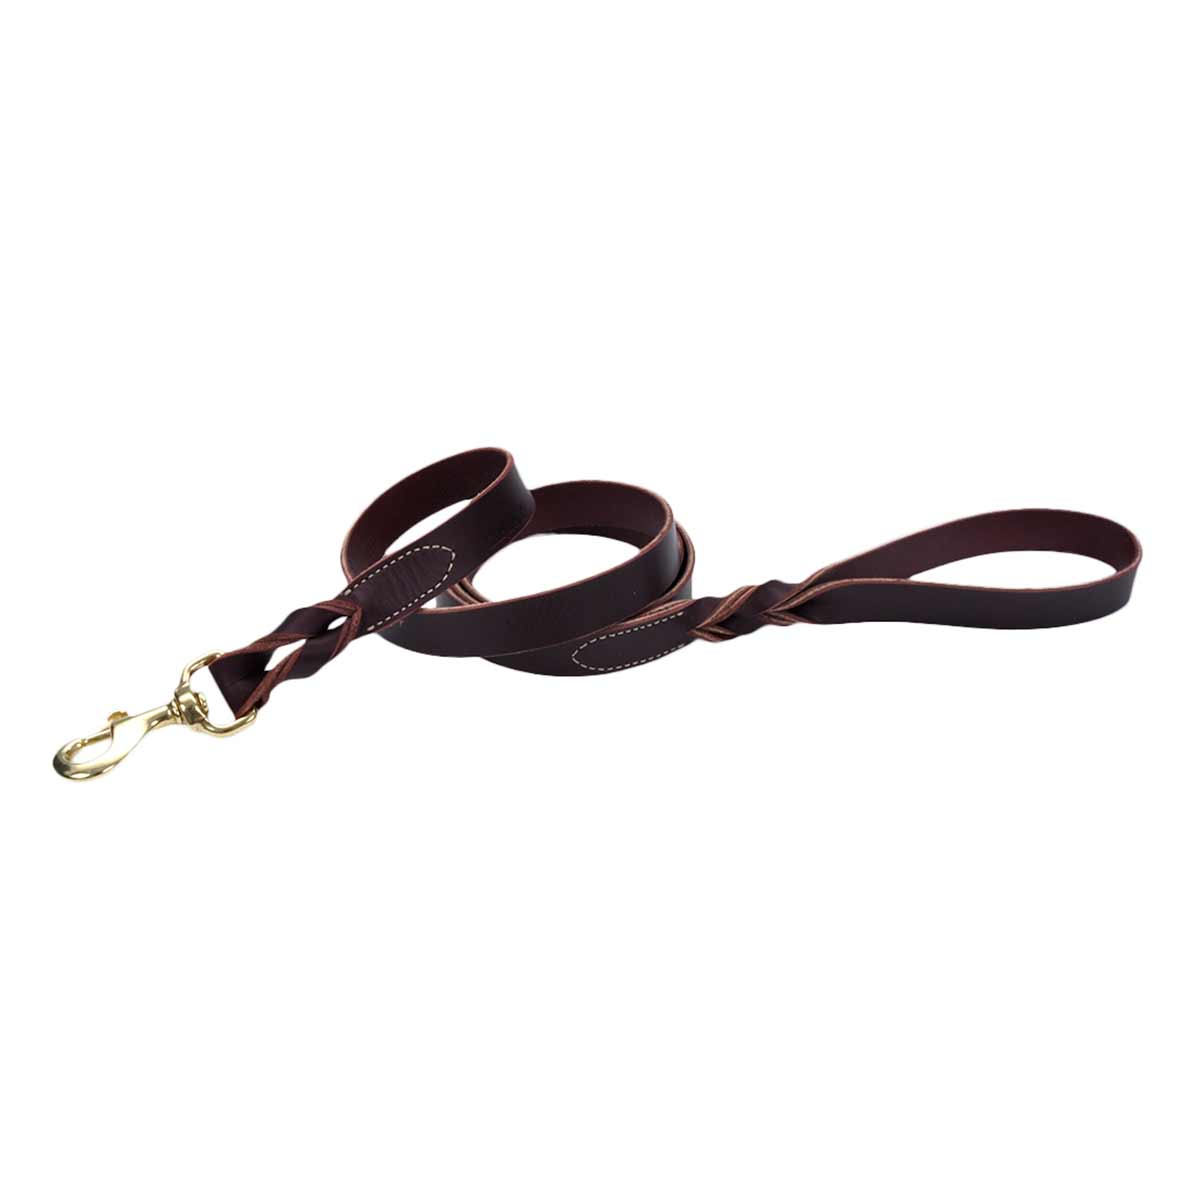 1 inch by 6 feet - Latigo Leather Twist Lead with Brass Hardware - Brown